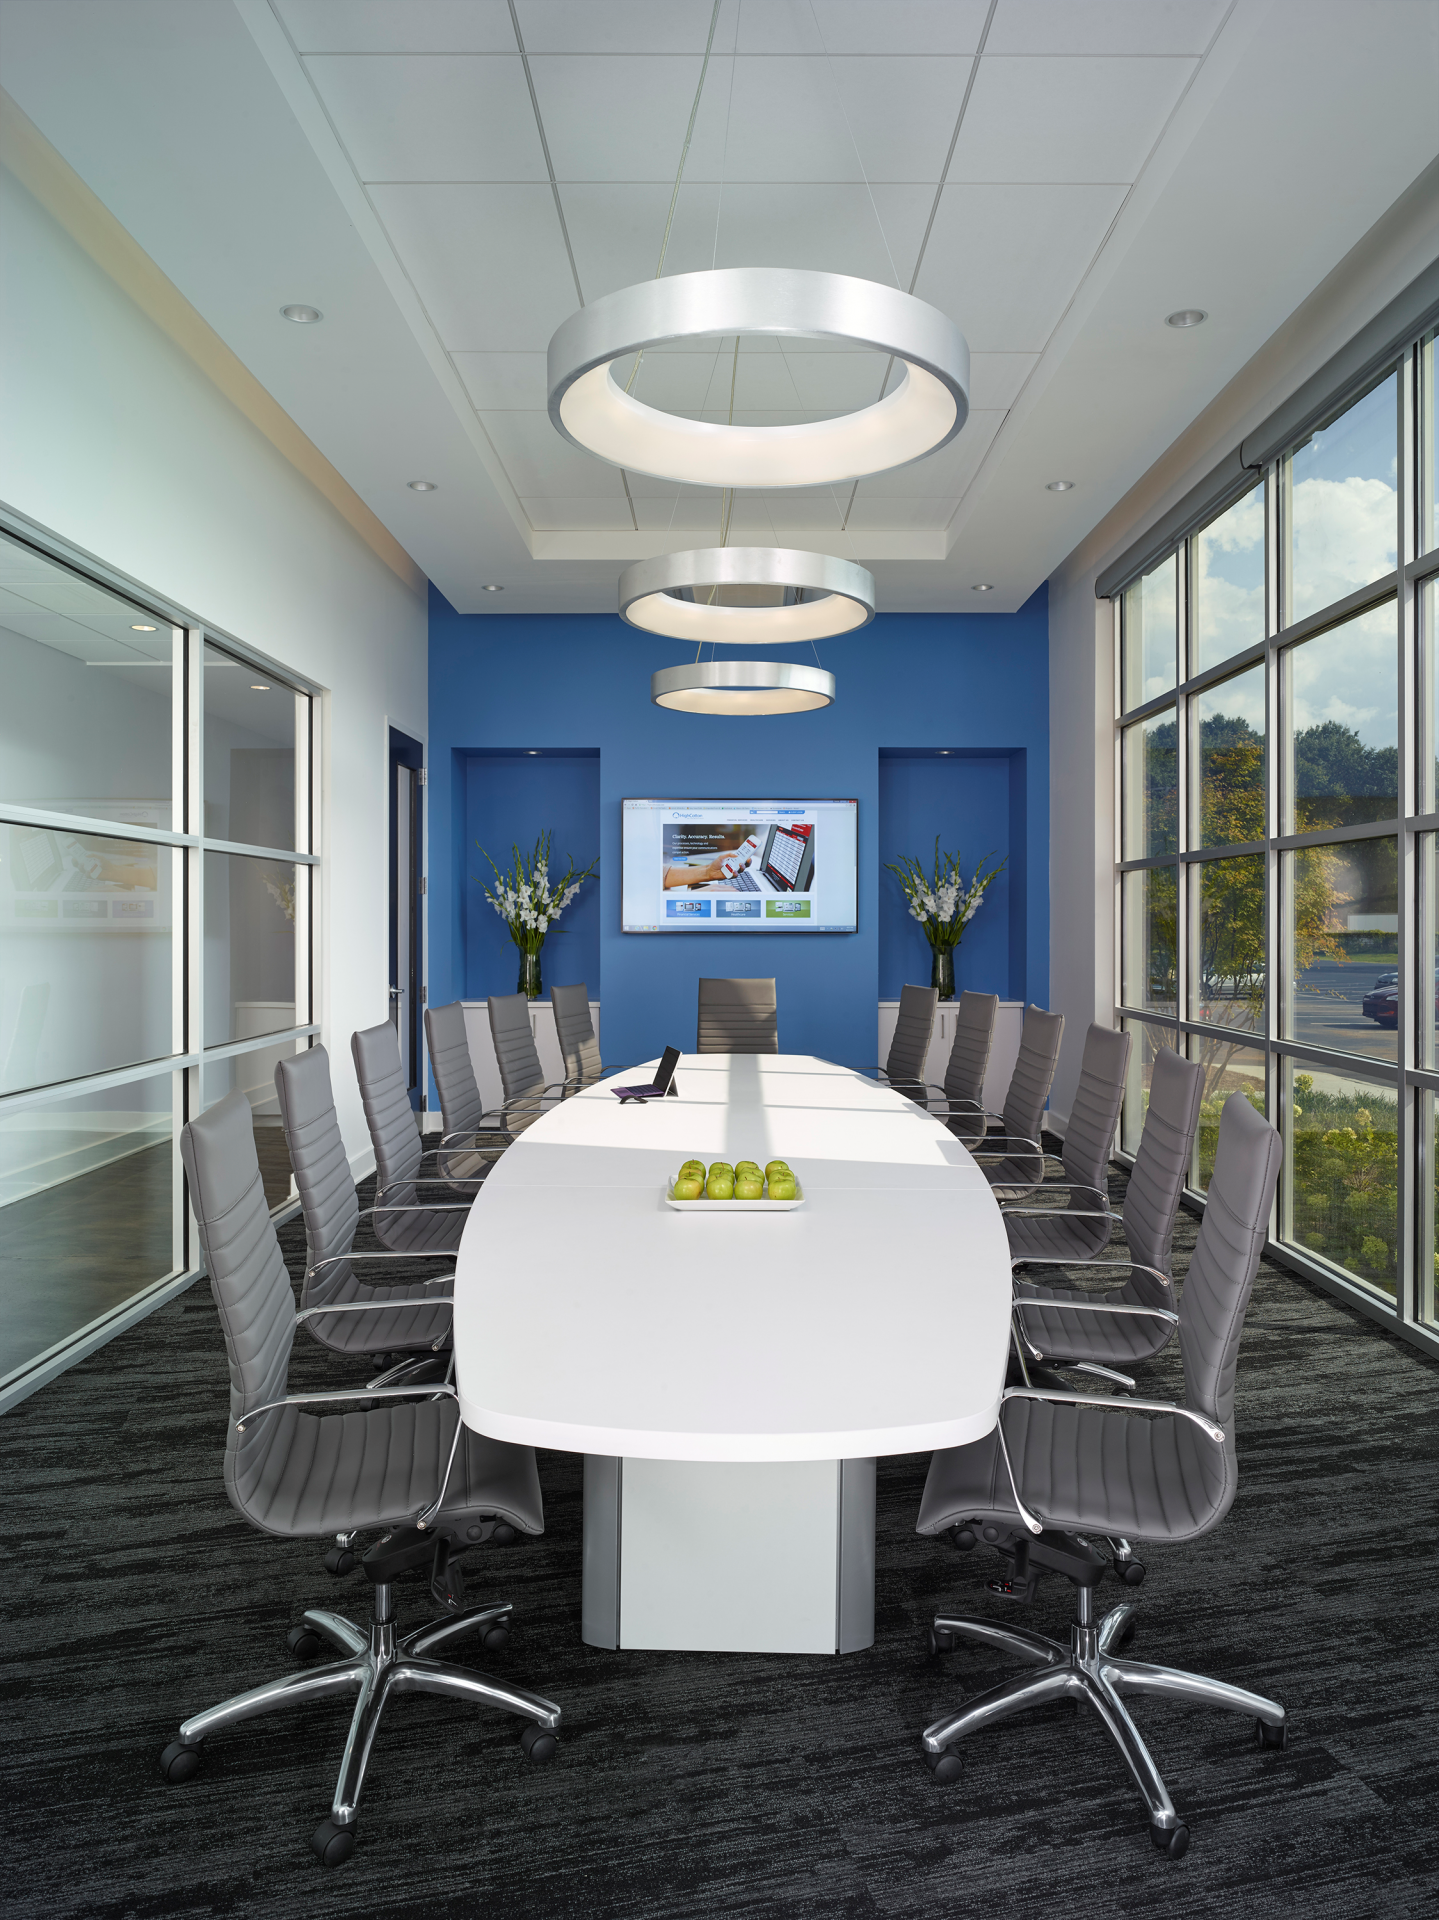 Conference Room Lighting Design: Walking In High Cotton